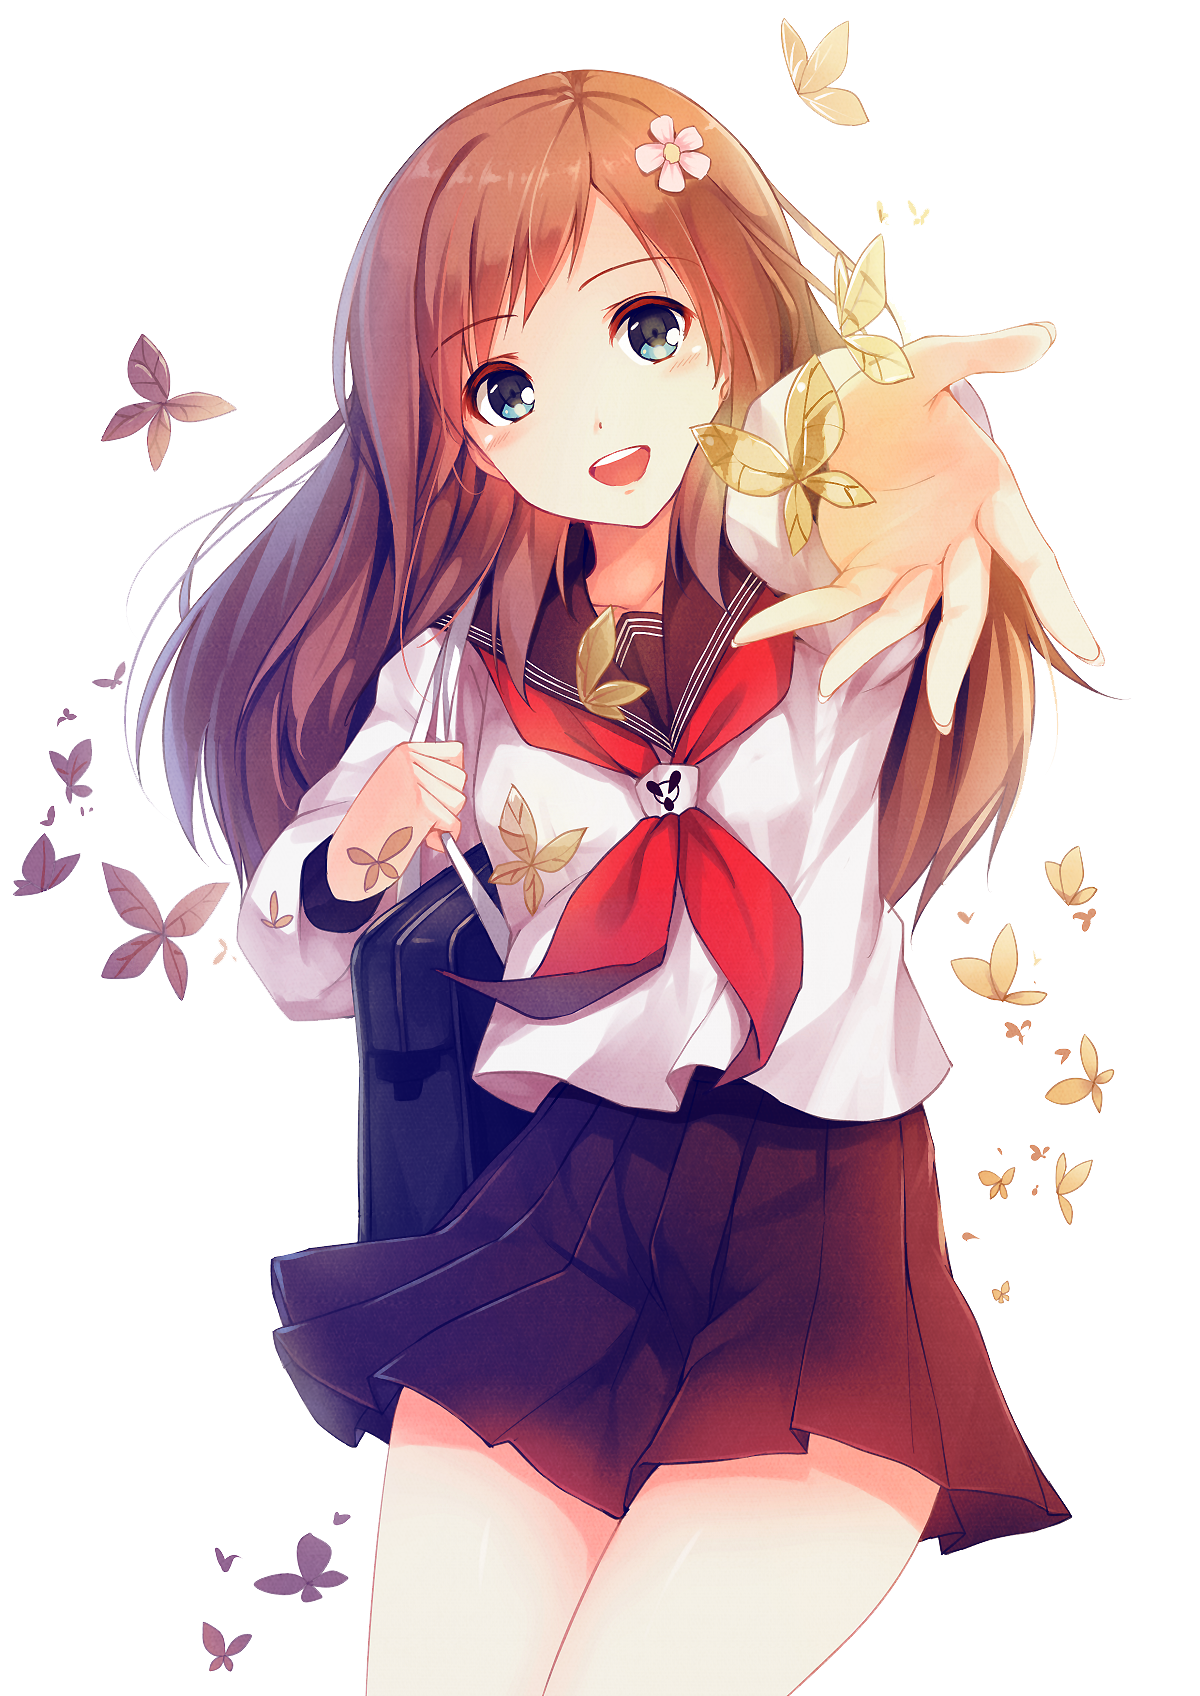 Anime picture 1200x1696 with original caidychen pustakkeramzytowy